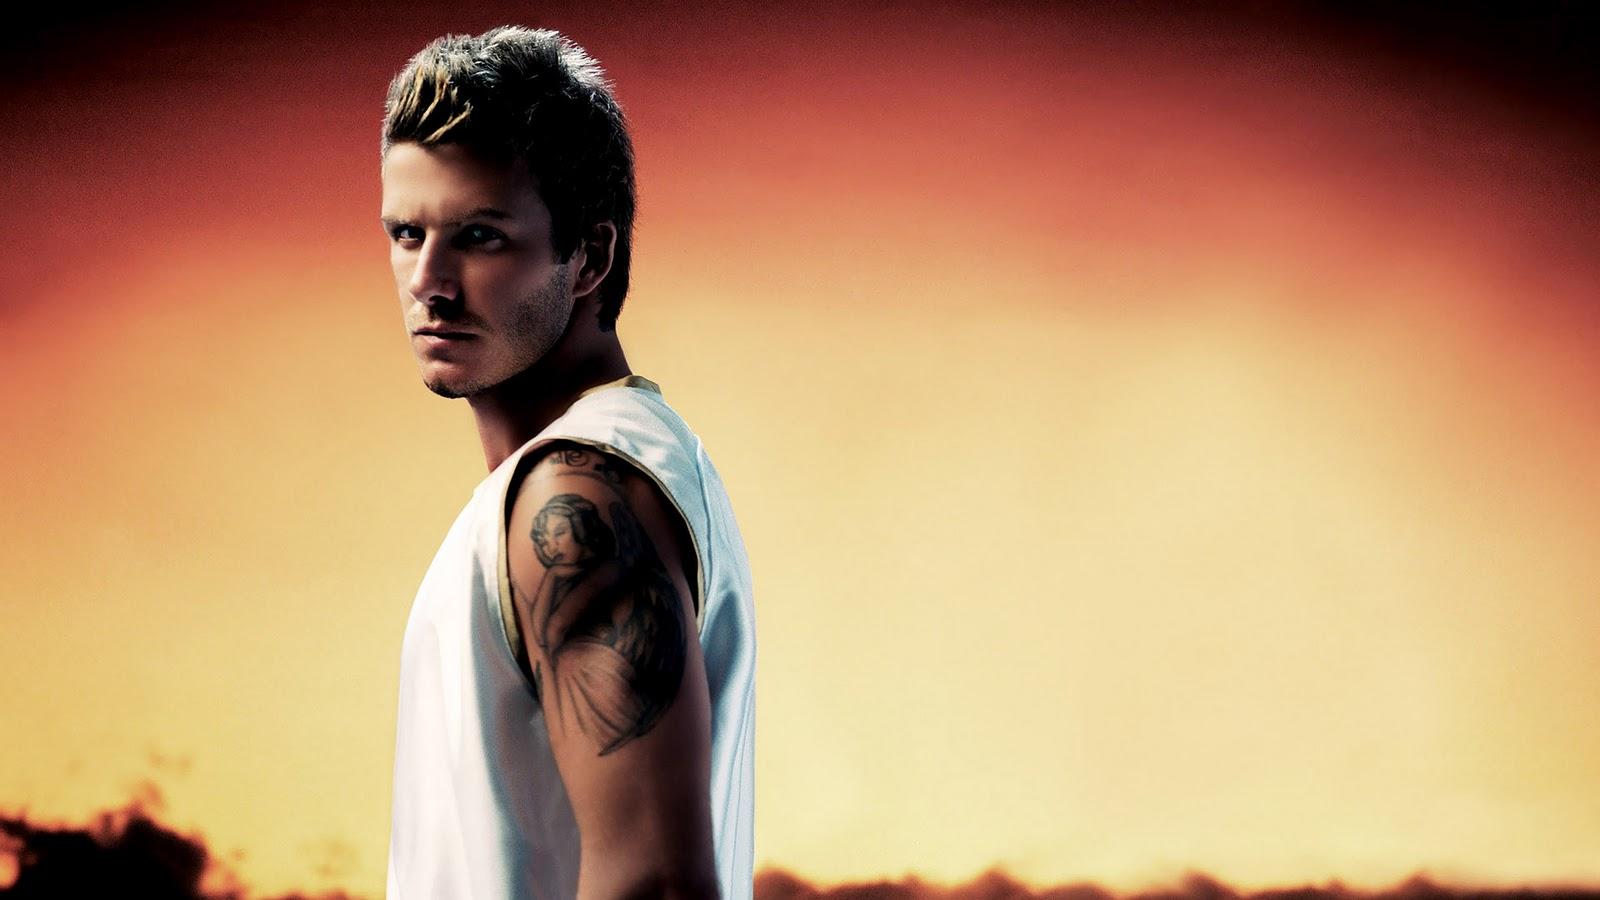 wallpapers david beckham wallpapers david beckham wallpapers david 1600x900